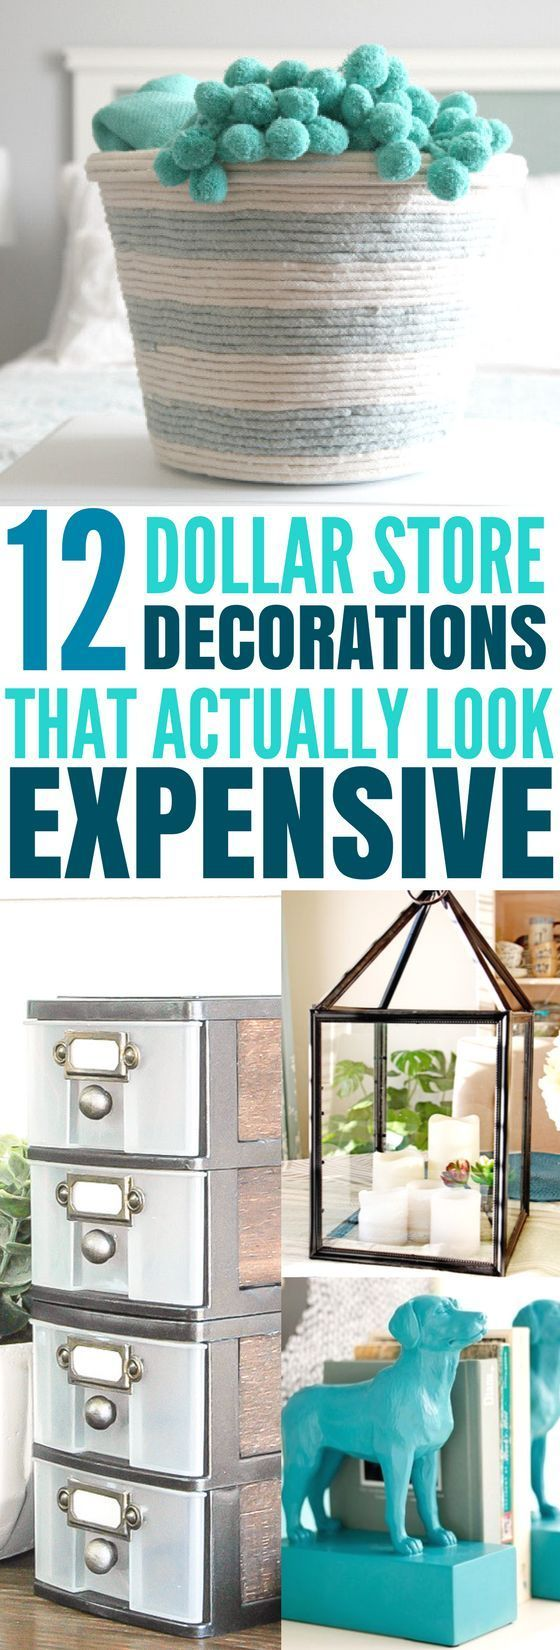 4195 Best Diy Home Decor Images On Pinterest Organisation Ideas Woodworking And Crafts